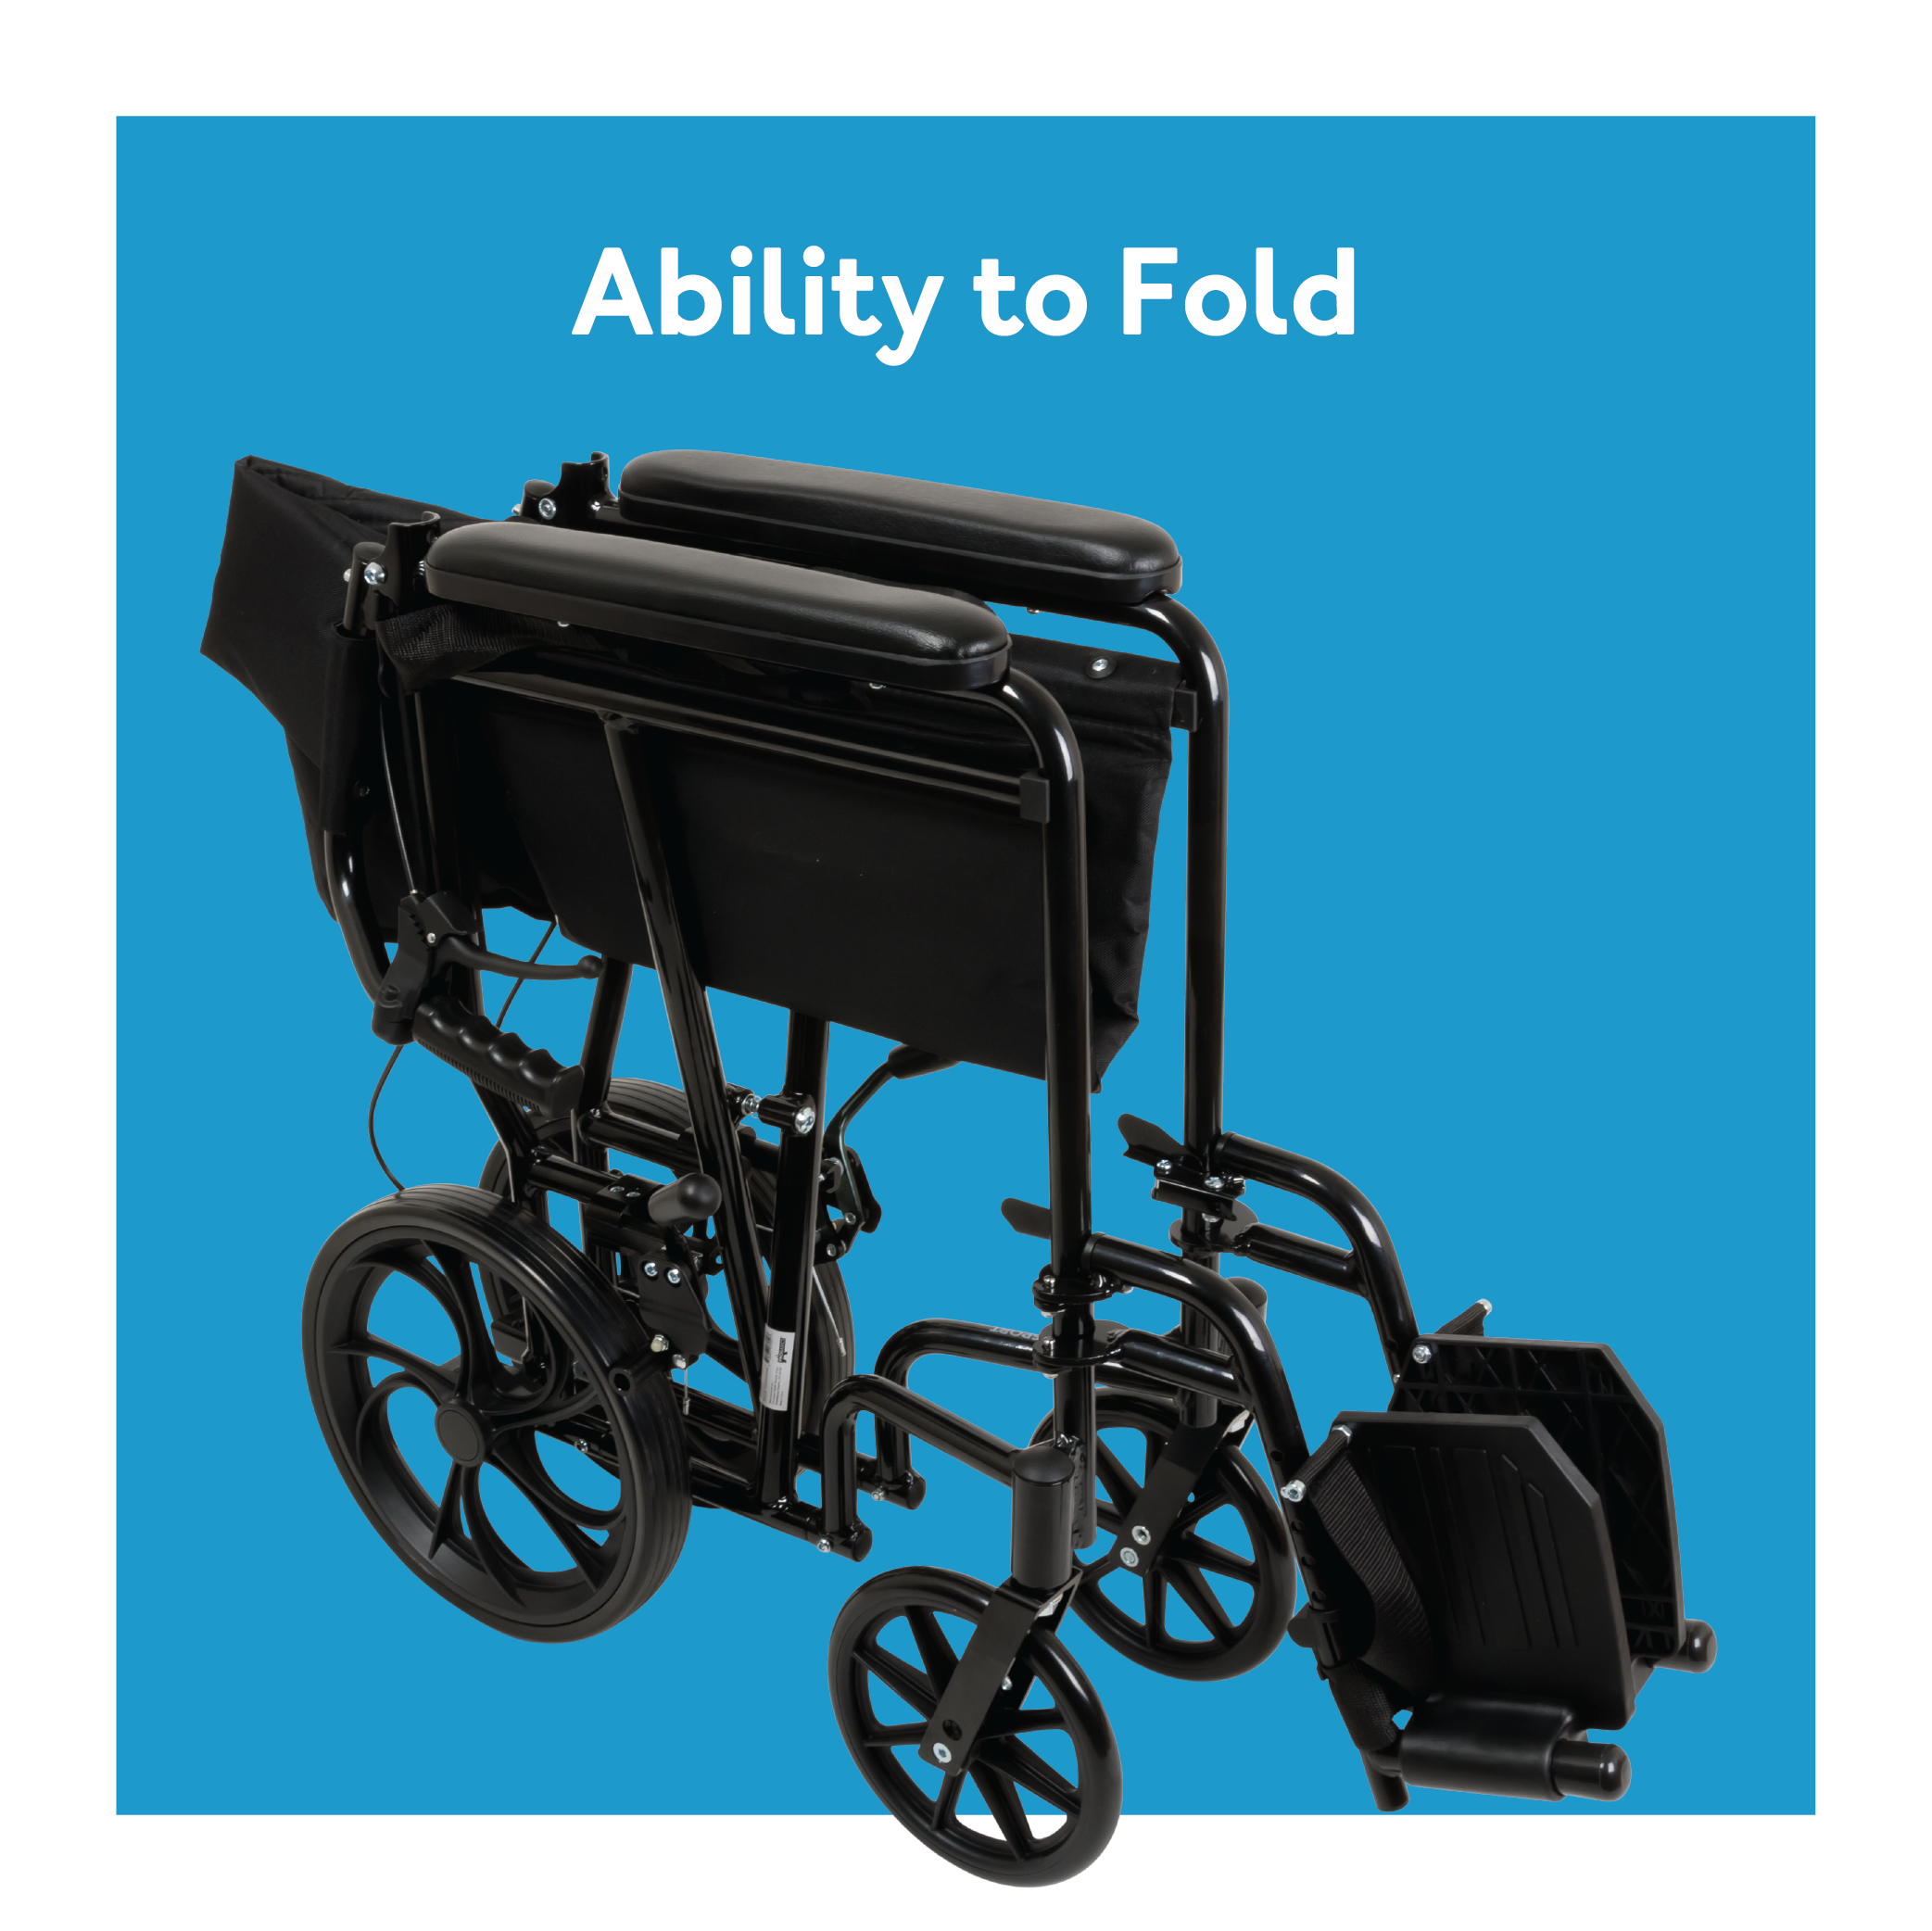 Ability to fold